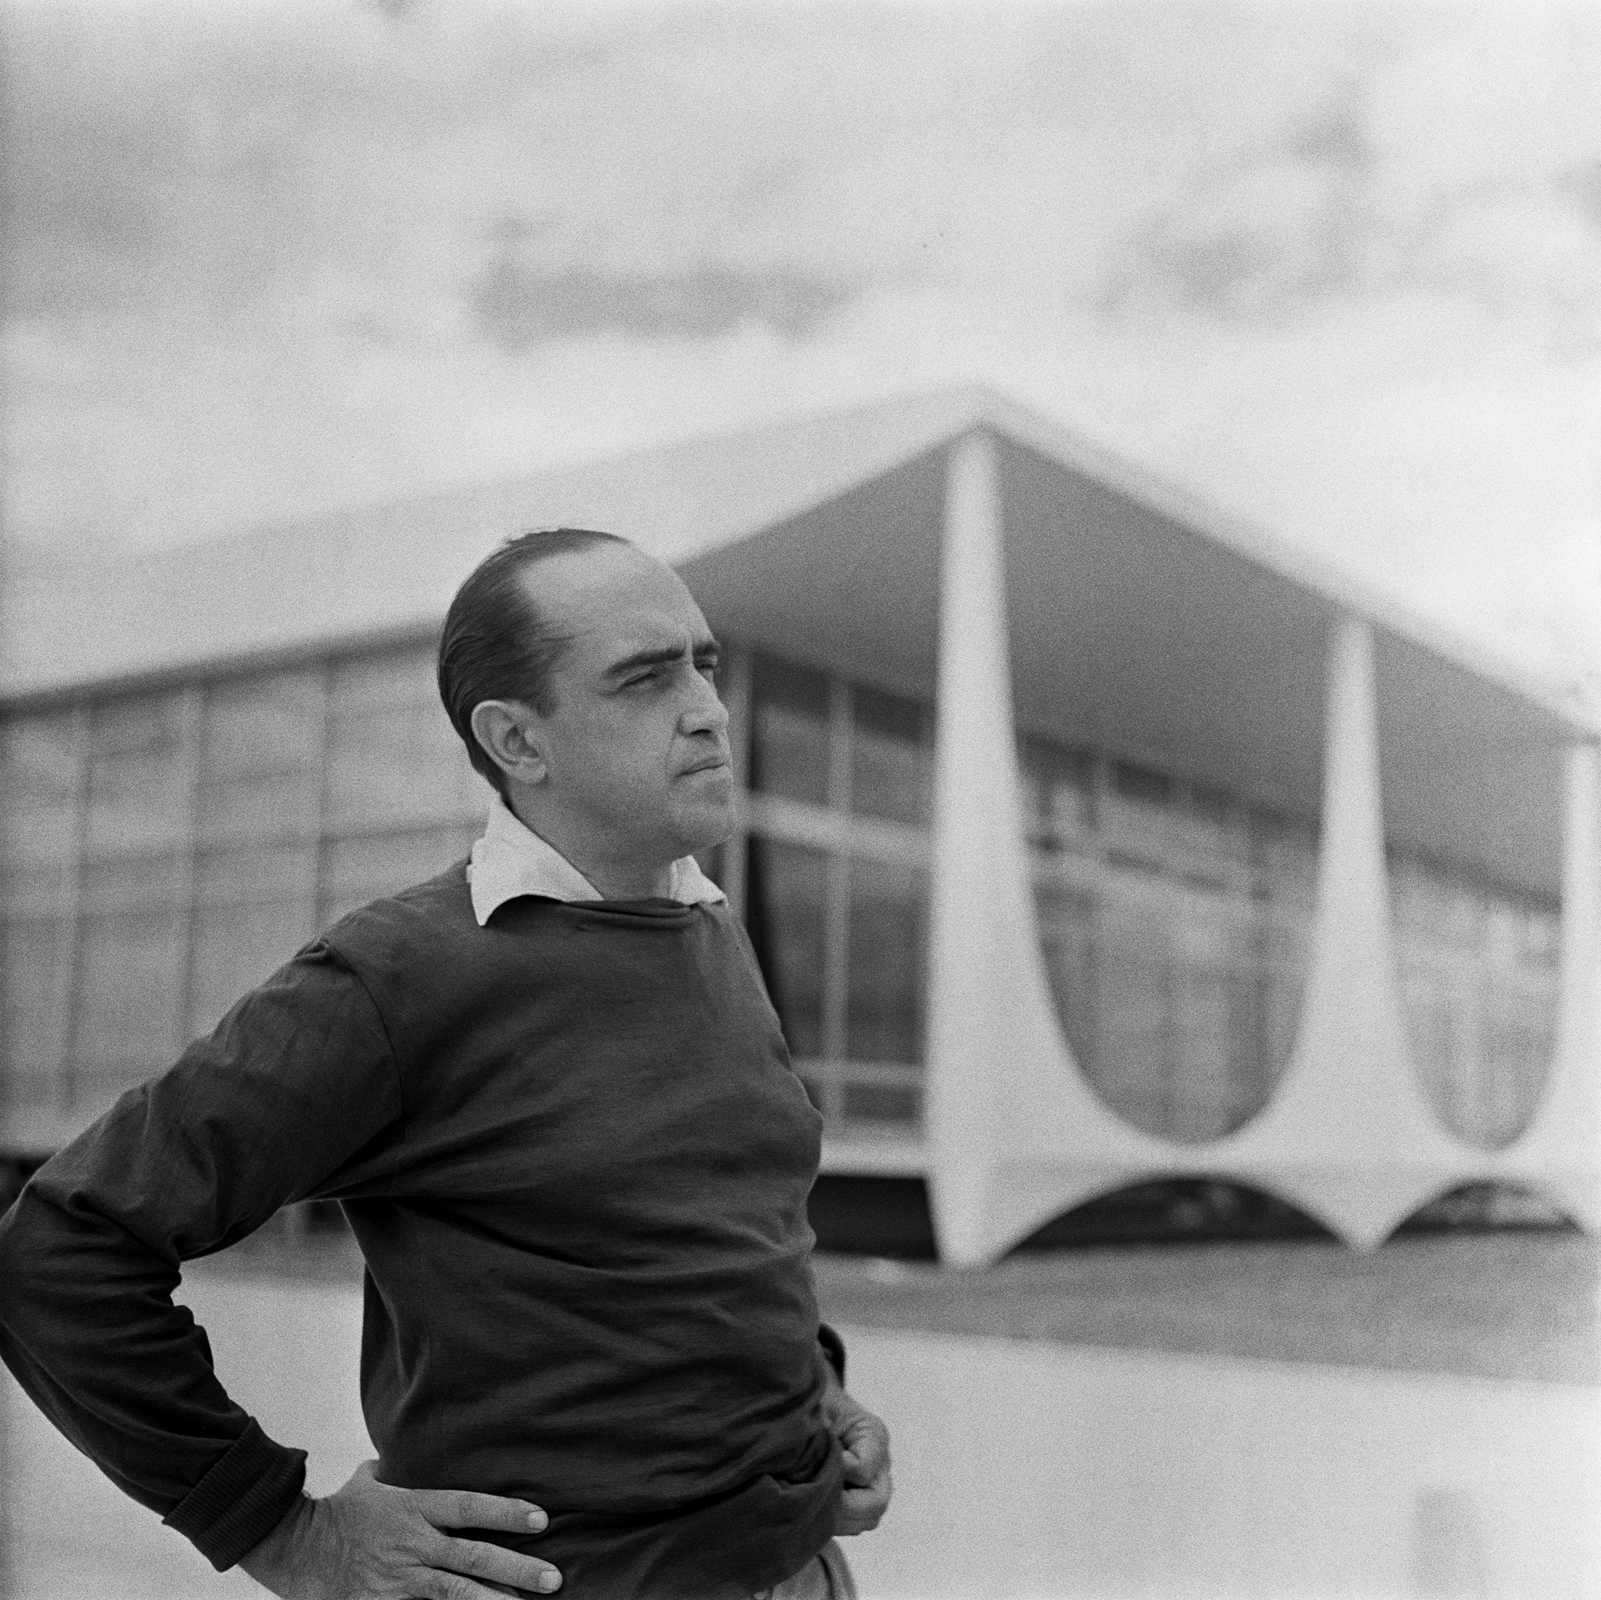 Oscar Niemeyer, one of the architects behind Brasilia's grand modernist vision, stands in front of the Supreme Court. Photo by Gil Pinhero.